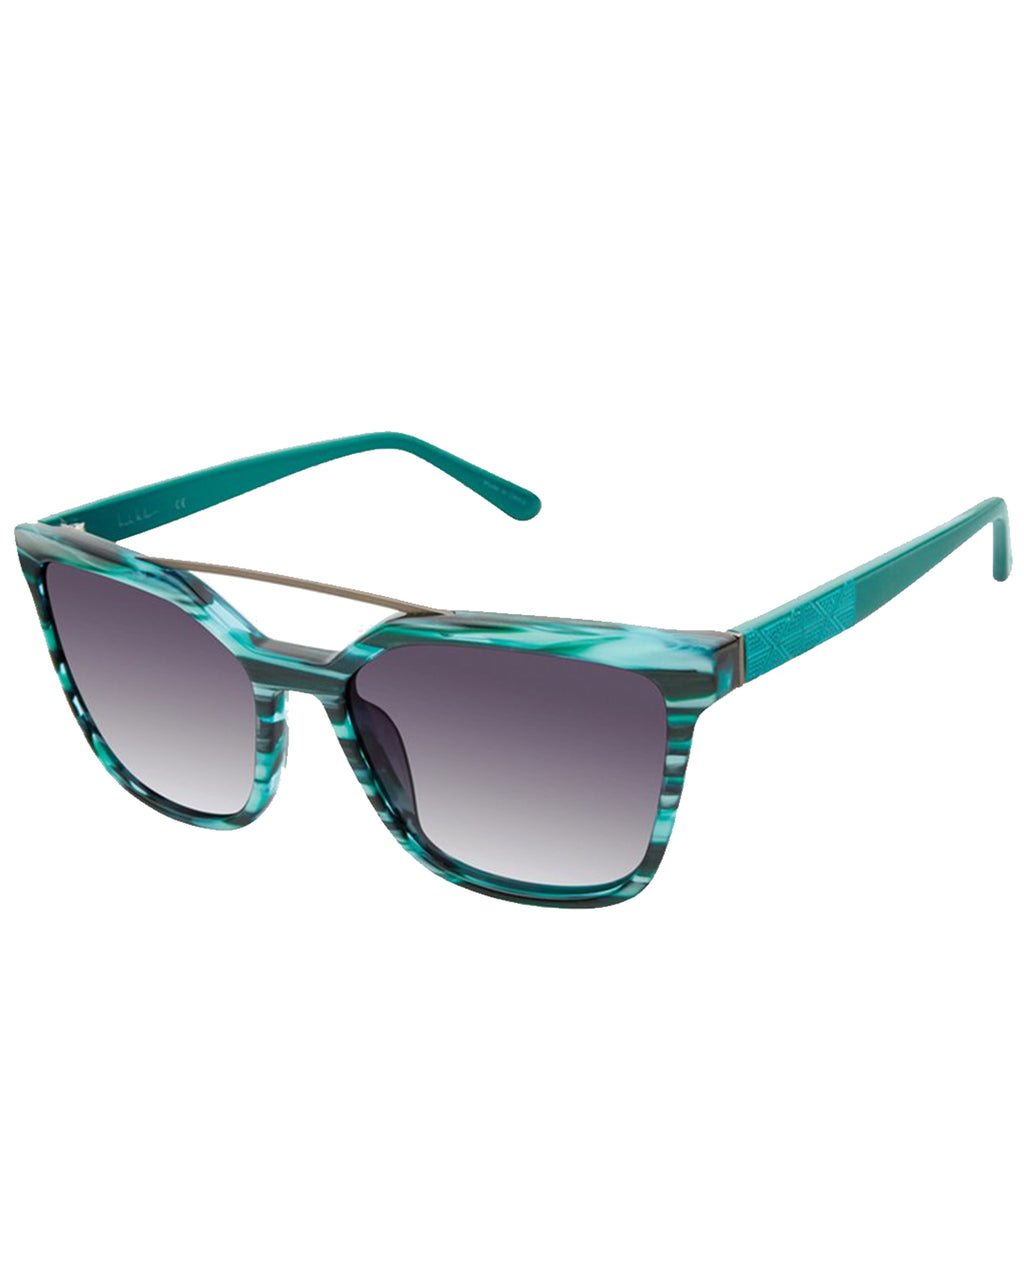 WEST - WEST SUNGLASSES - accessories - sunglasses - Trendy and fun, these sunglasses feature rectangular lenses and a bridged frame for an effortlessly cool look.